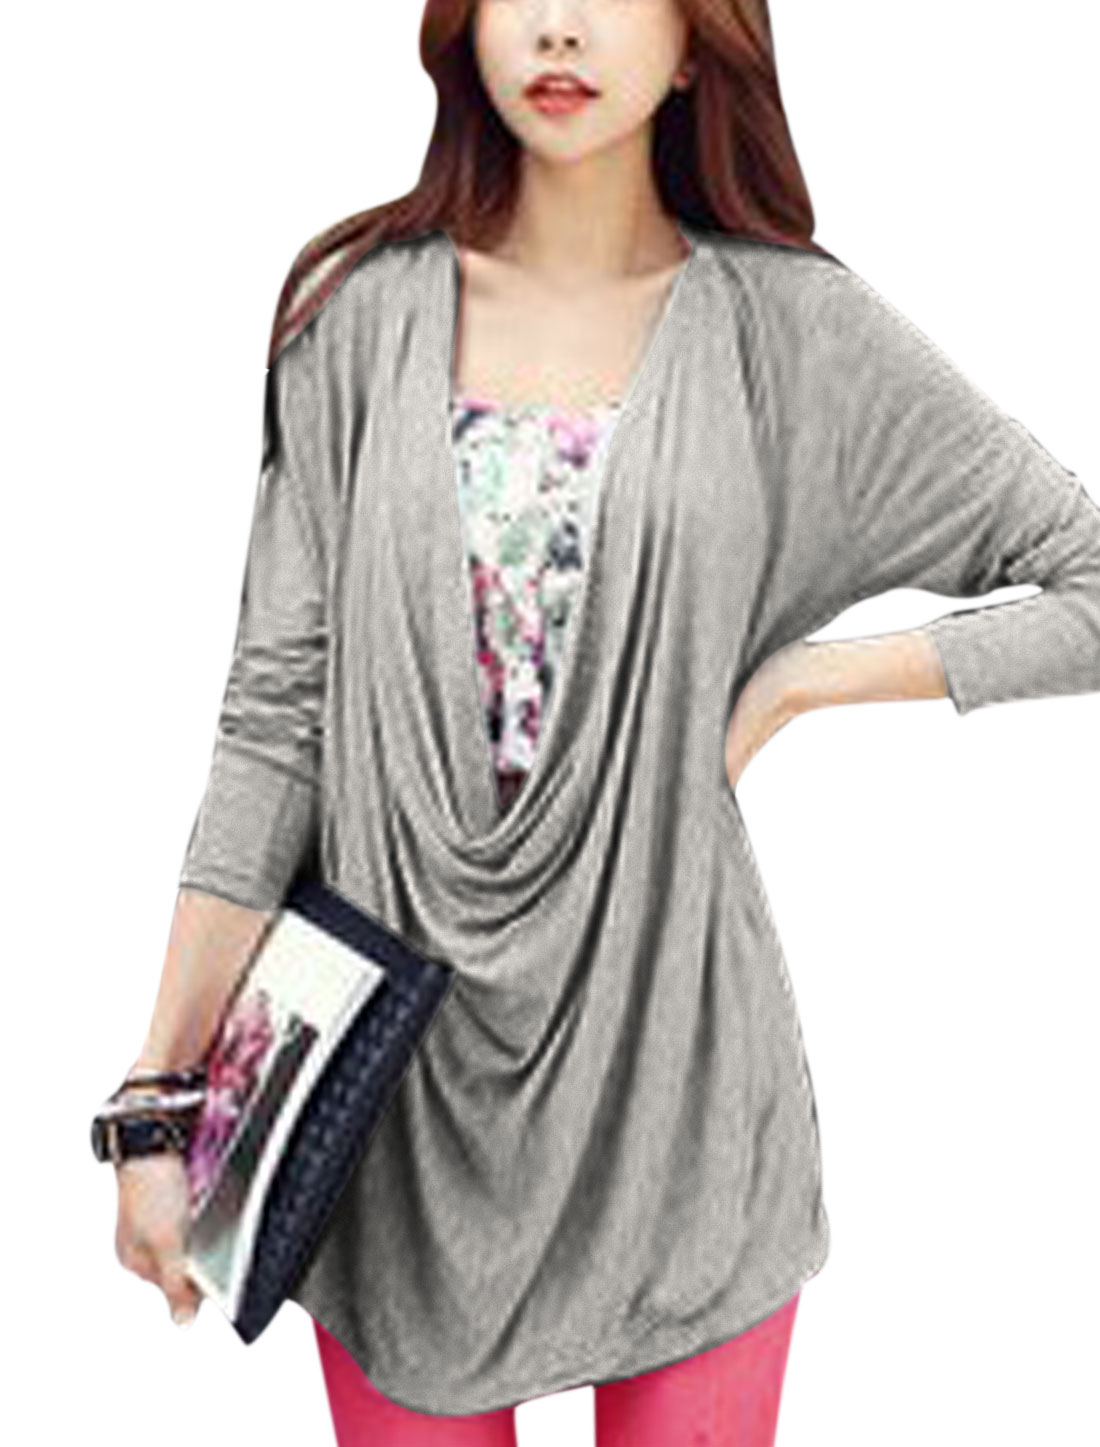 Loose Fit Soft Long Sleeve Two Way Top for Lady Light Gray S